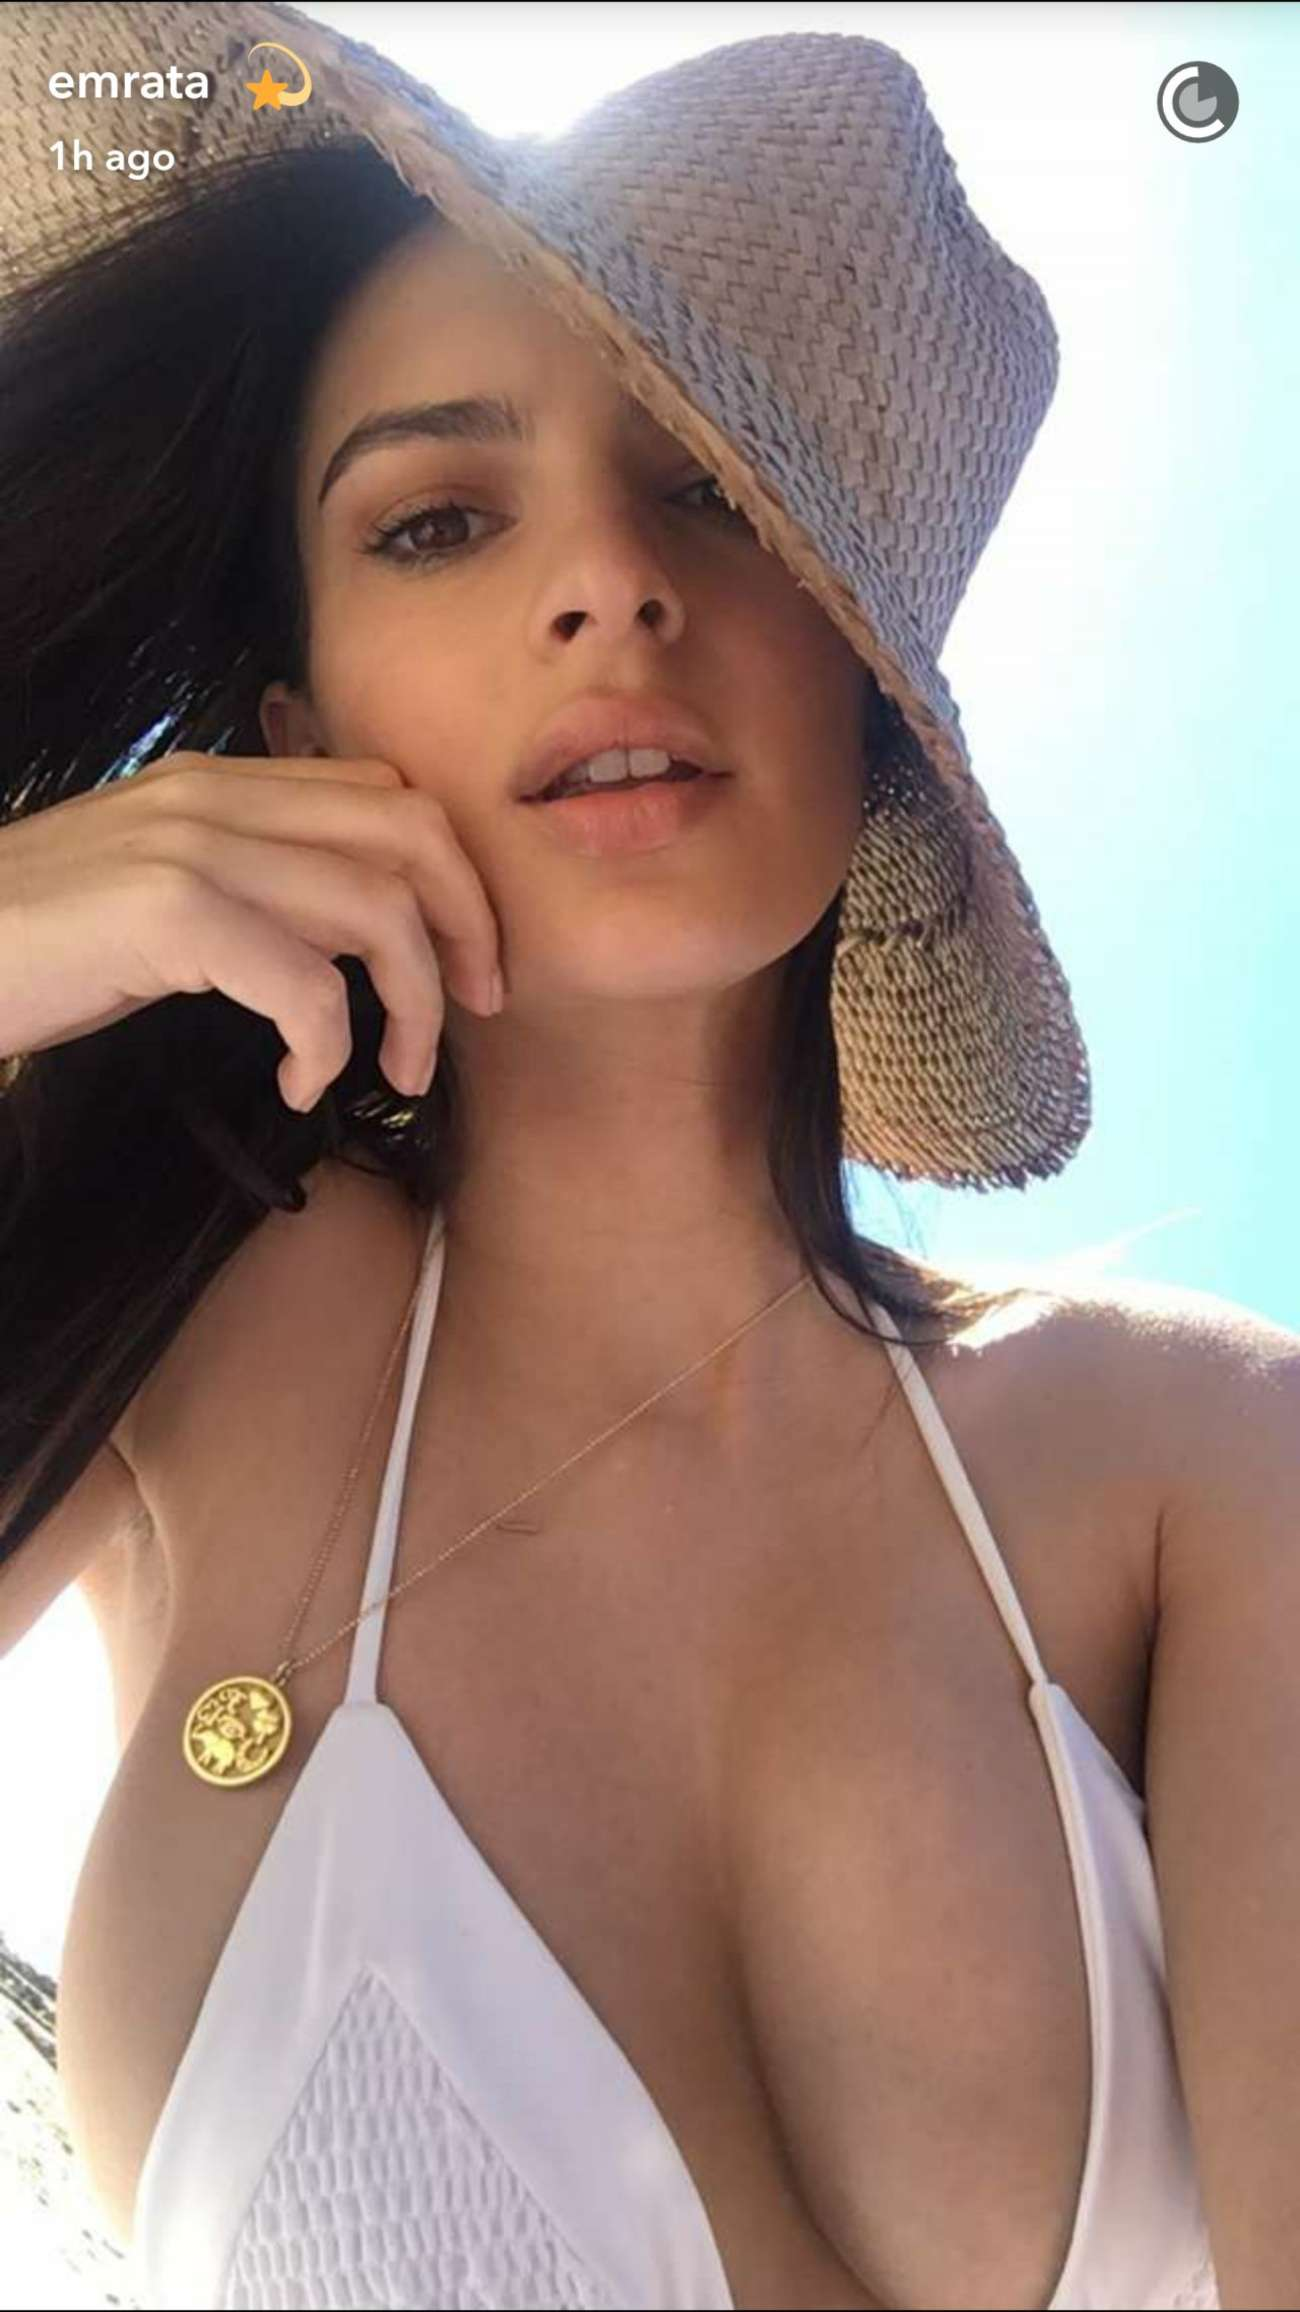 Emily Ratajkowski in Bikini and Swimsuit Social Media